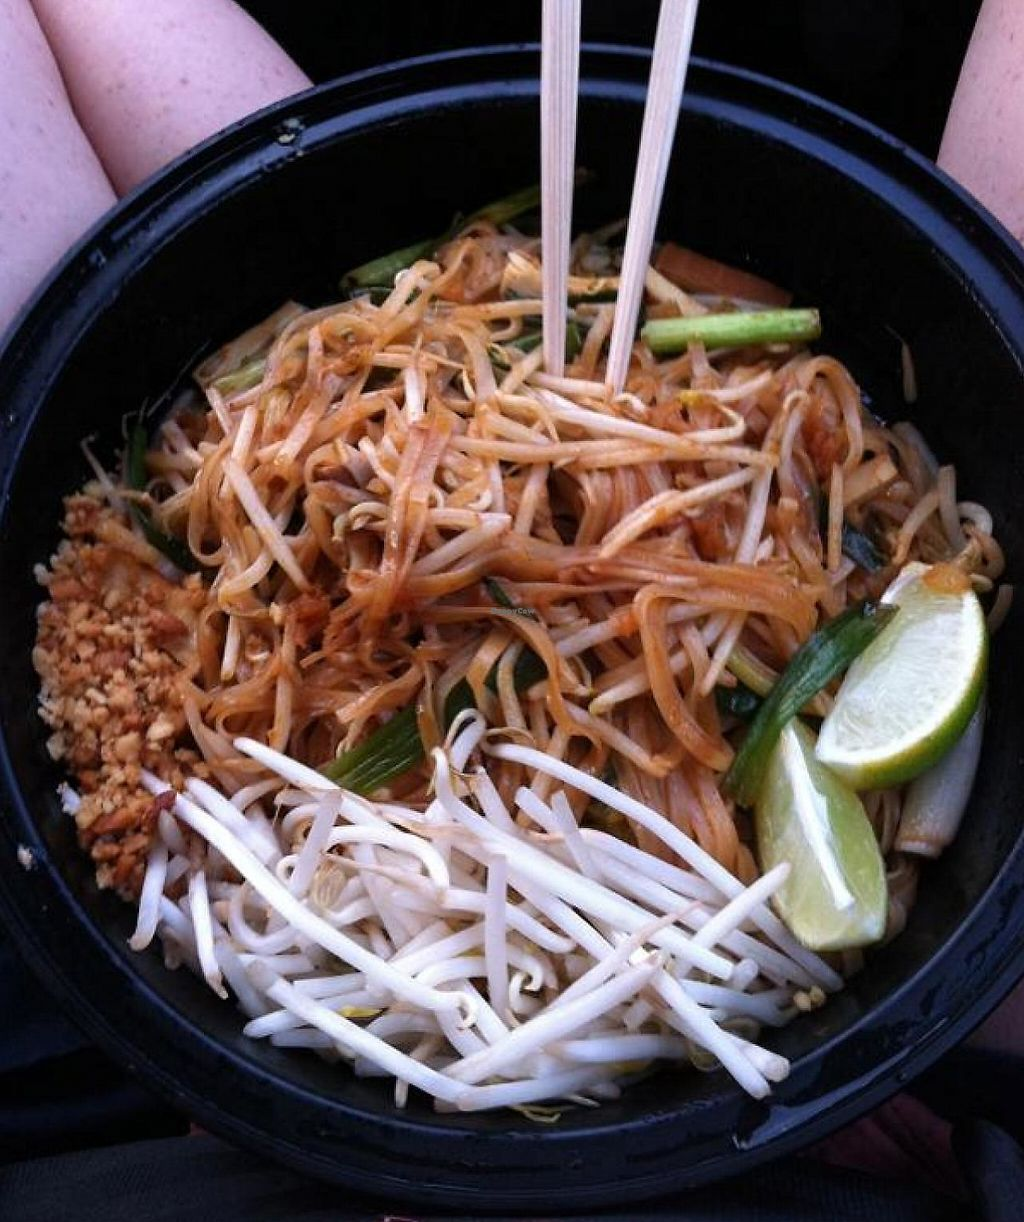 """Photo of Wynn Hotel - Wazuzu  by <a href=""""/members/profile/Meggie%20and%20Ben"""">Meggie and Ben</a> <br/>Vegan pad thai to go <br/> December 1, 2014  - <a href='/contact/abuse/image/21258/207730'>Report</a>"""